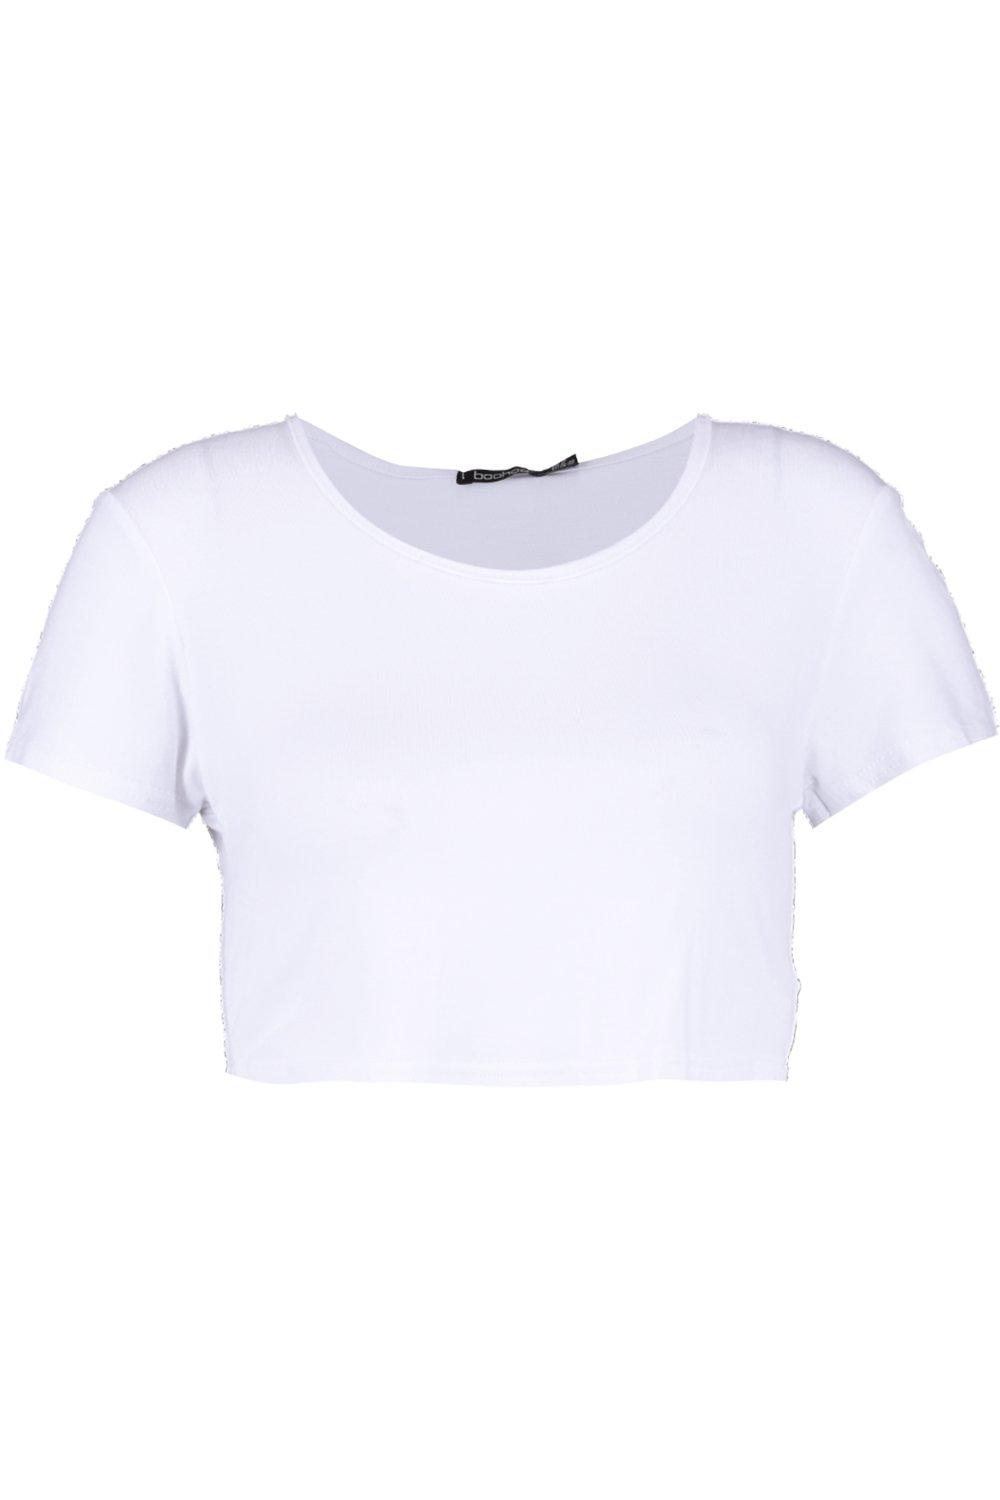 Top Sleeve Basic white Crop Short qfwXWBxtpZ